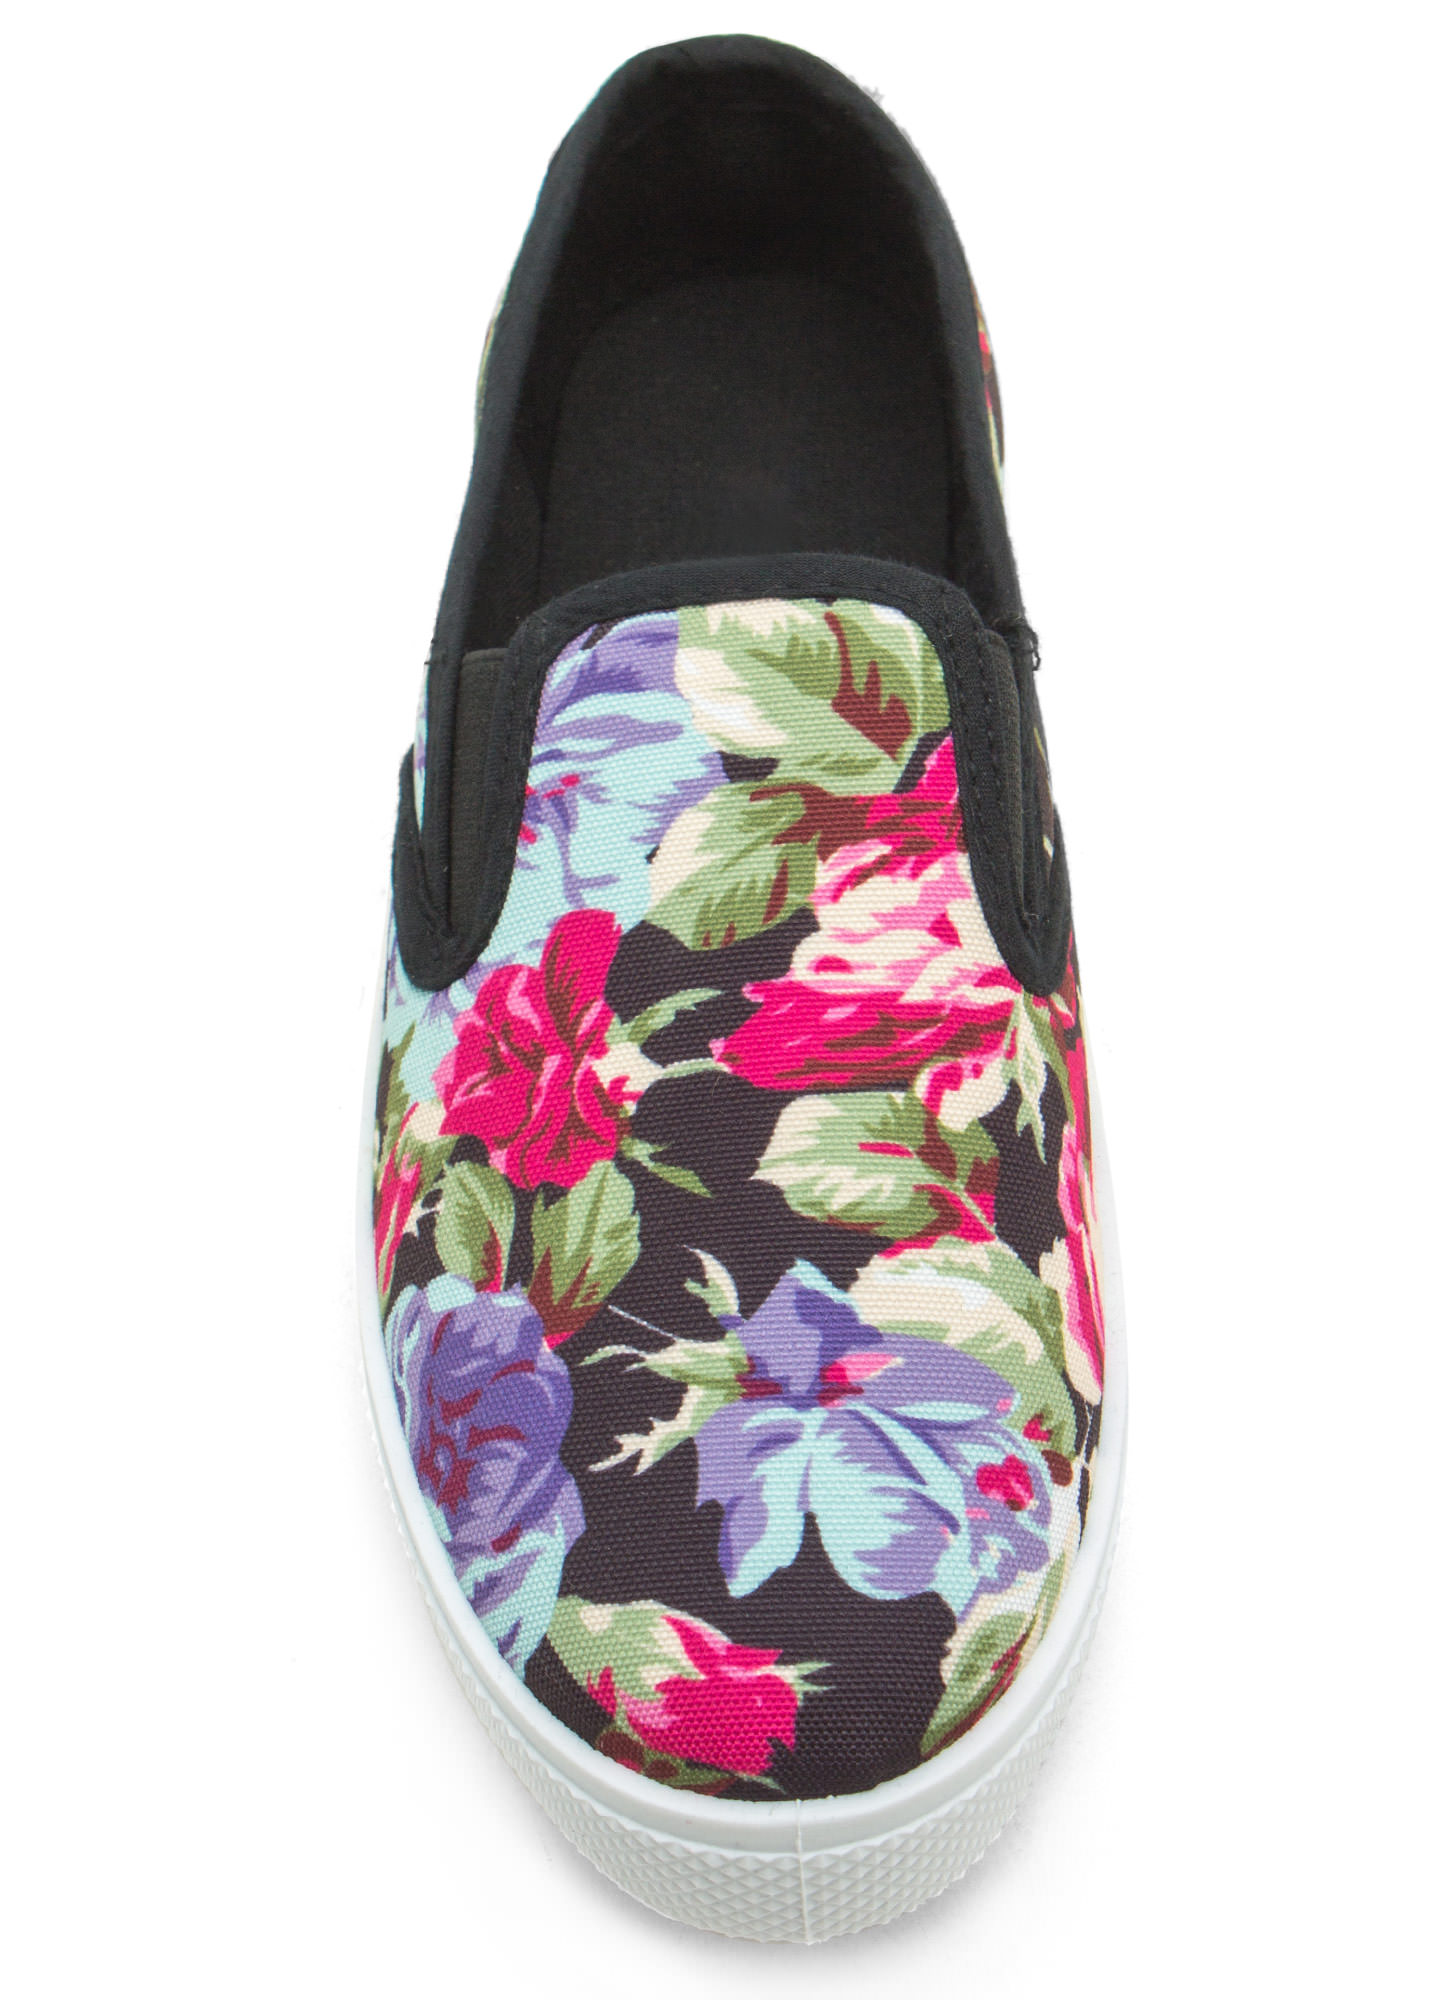 More Flower To You Slip-On Sneakers BLACK